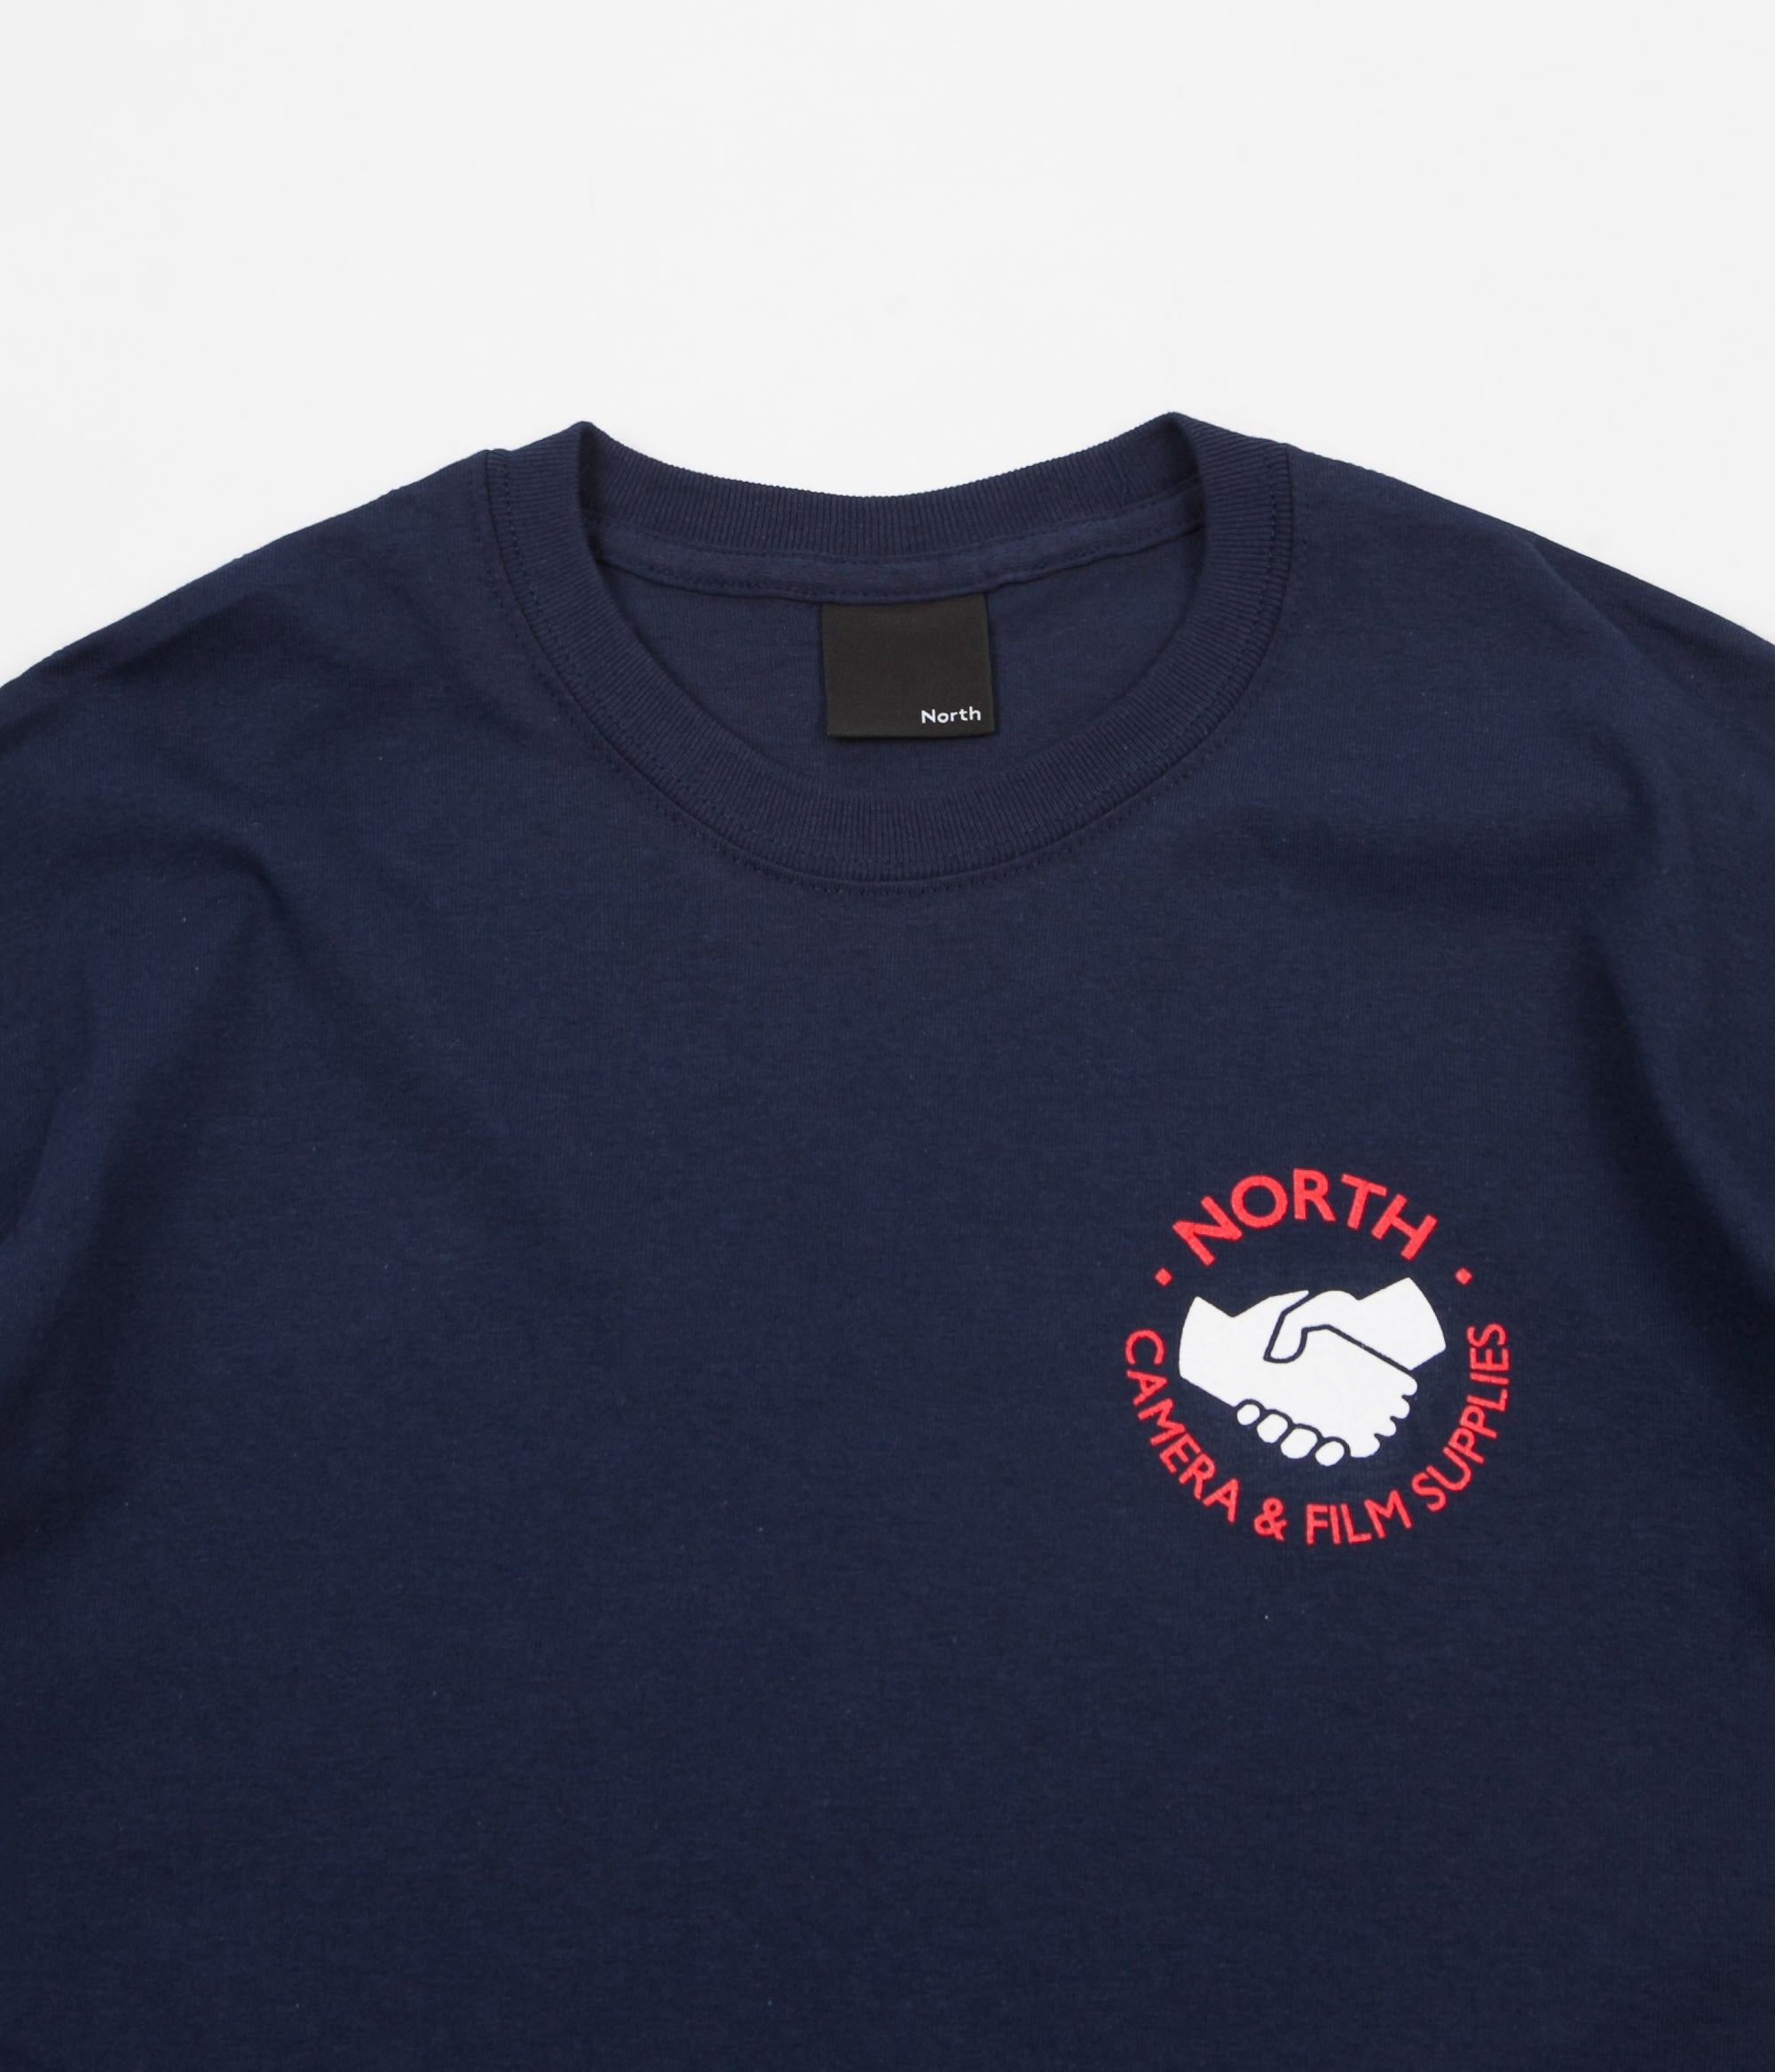 North Skateboard Magazine Supplies Logo T-Shirt - Navy / Red / White